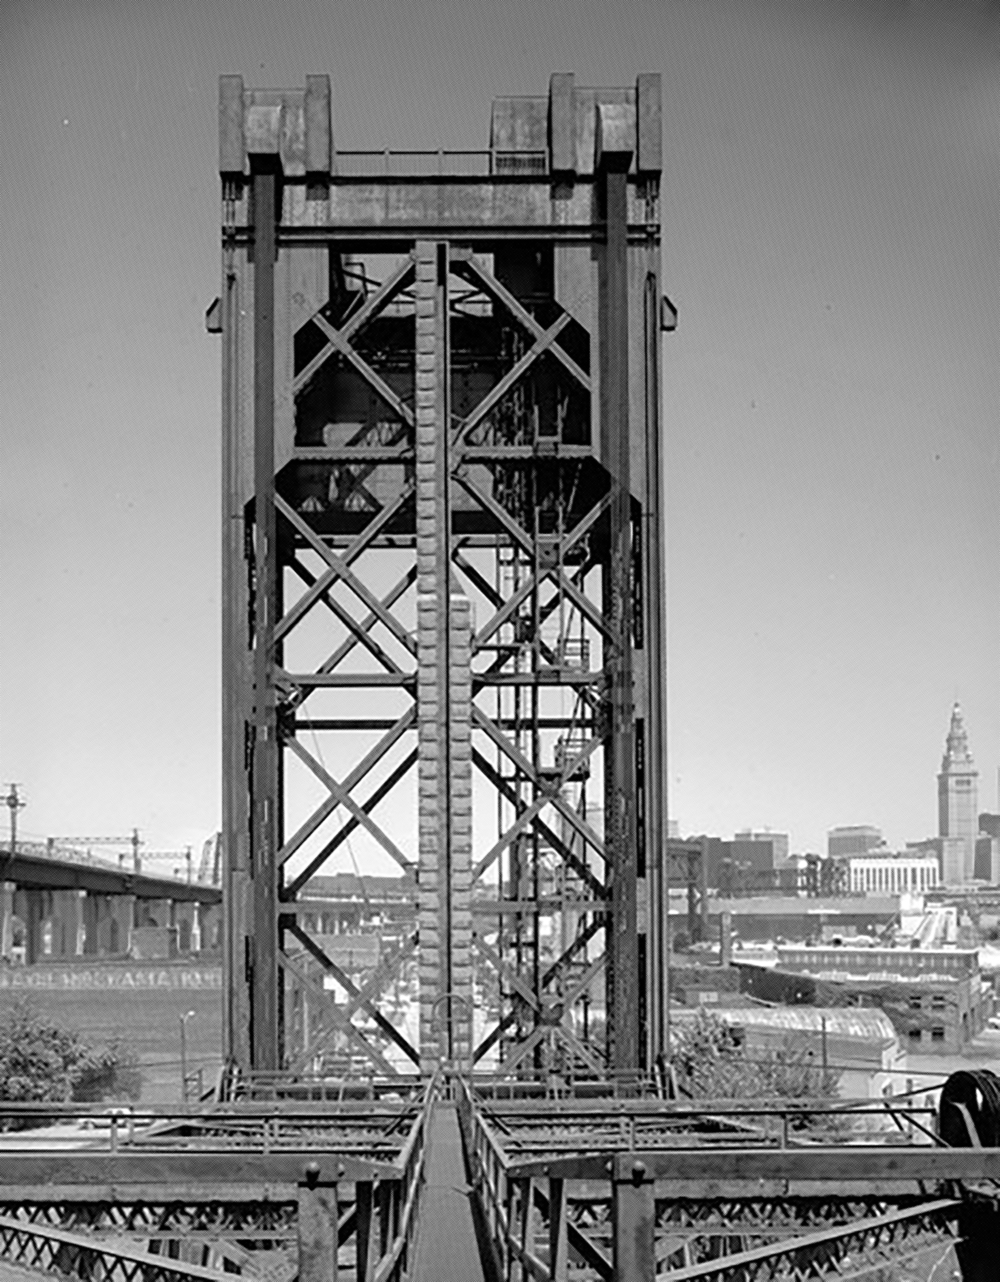 view-of-south-lift-tower-from-moveable-span-catwalk-in-down-position-from-louise-taft-cawood-july-1986-from-historic-american-engineering-record-national-park-service-dept-of-the-interior.jpg